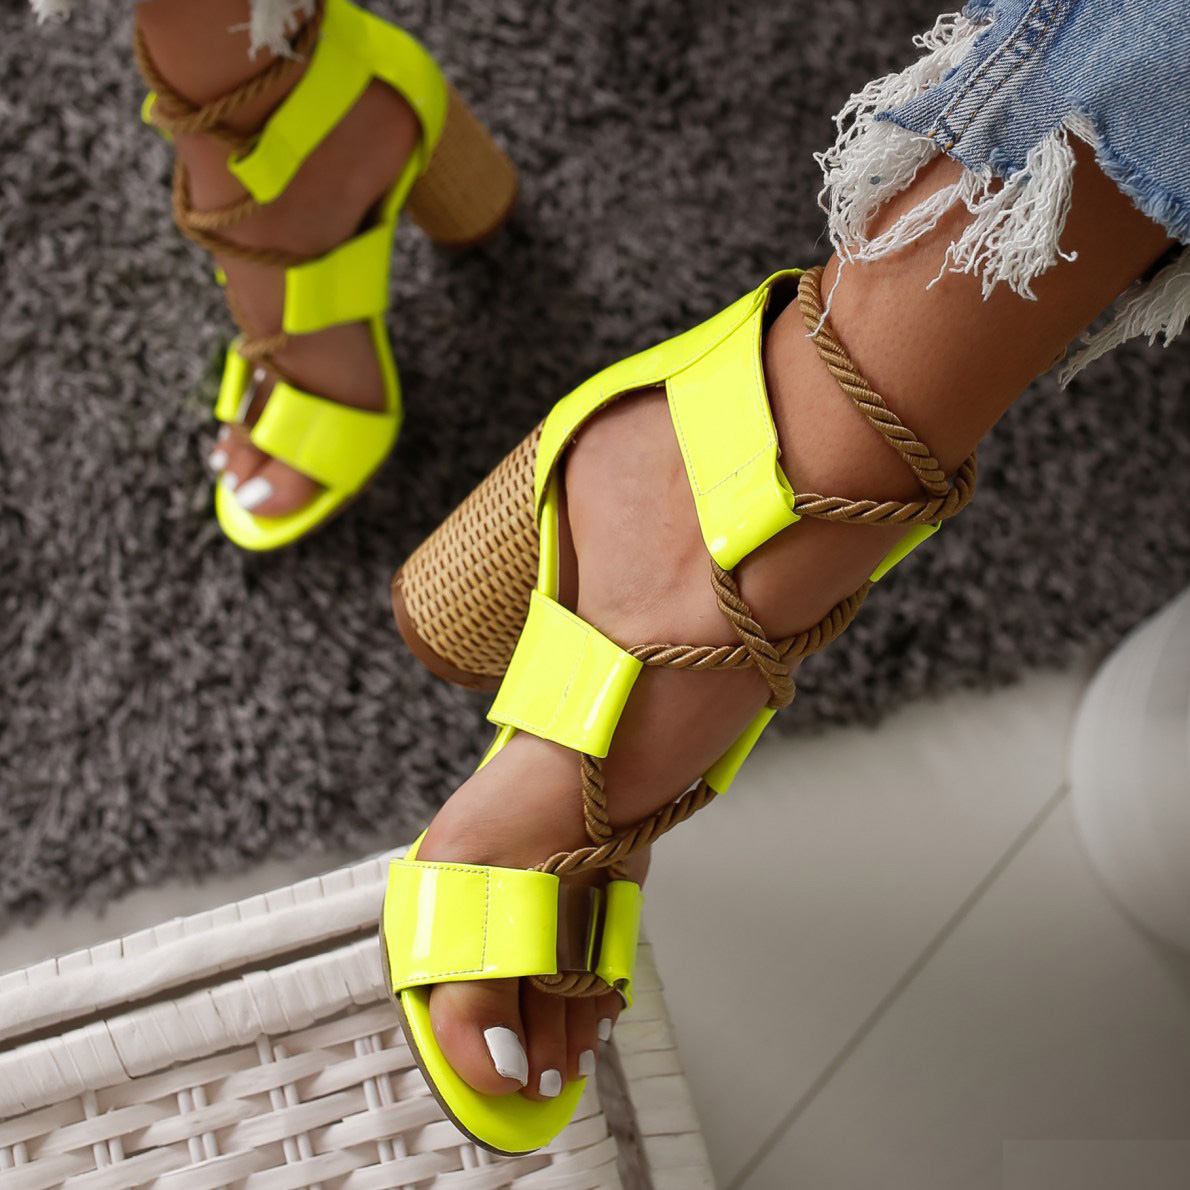 2019 Wedge Women Sandals High Heel Pointed Fish Mouth Fashion Sandals Squre Hemp Rope Lace Up Sandals Rope Lace-up Plus 35-432019 Wedge Women Sandals High Heel Pointed Fish Mouth Fashion Sandals Squre Hemp Rope Lace Up Sandals Rope Lace-up Plus 35-43